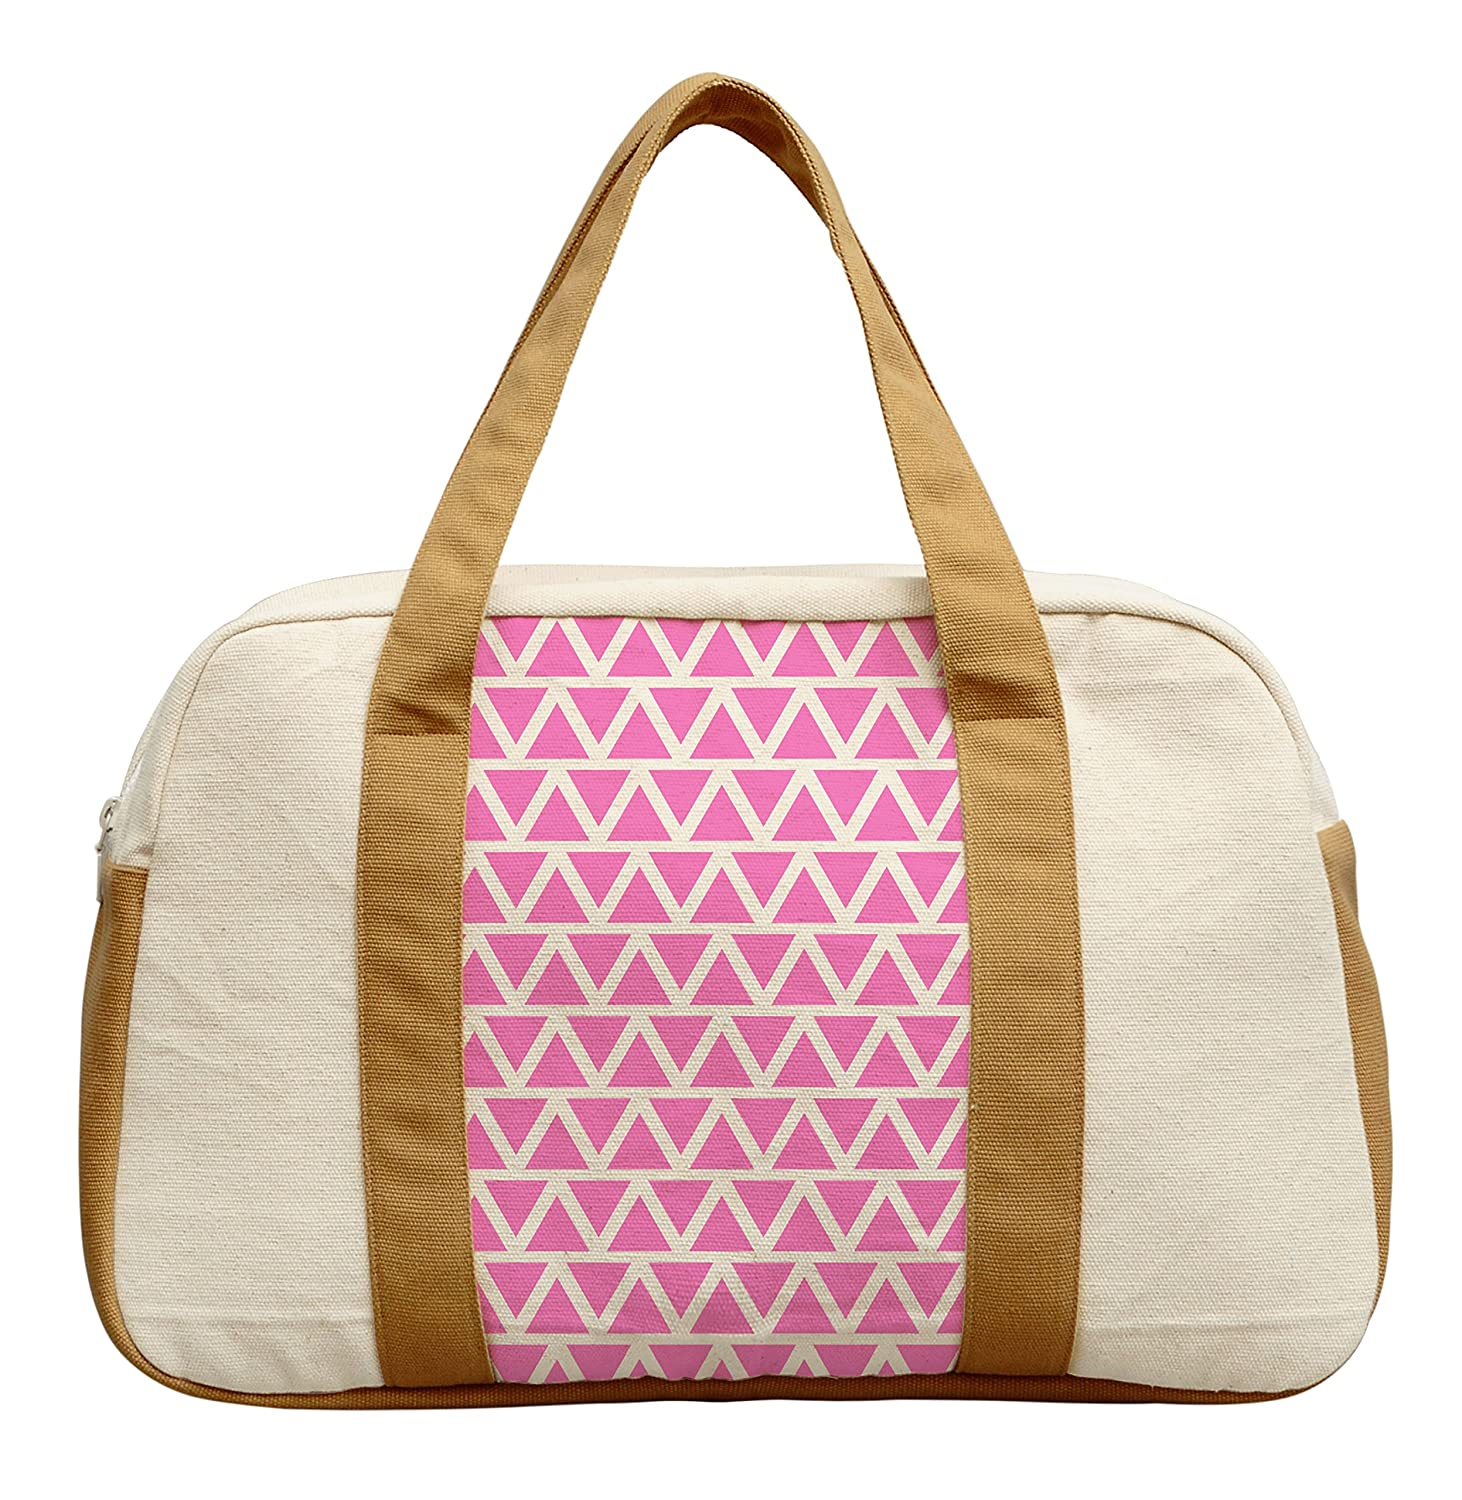 Womens Painted Pink Chevron Printed Canvas Duffel Travel Bags WAS/_19